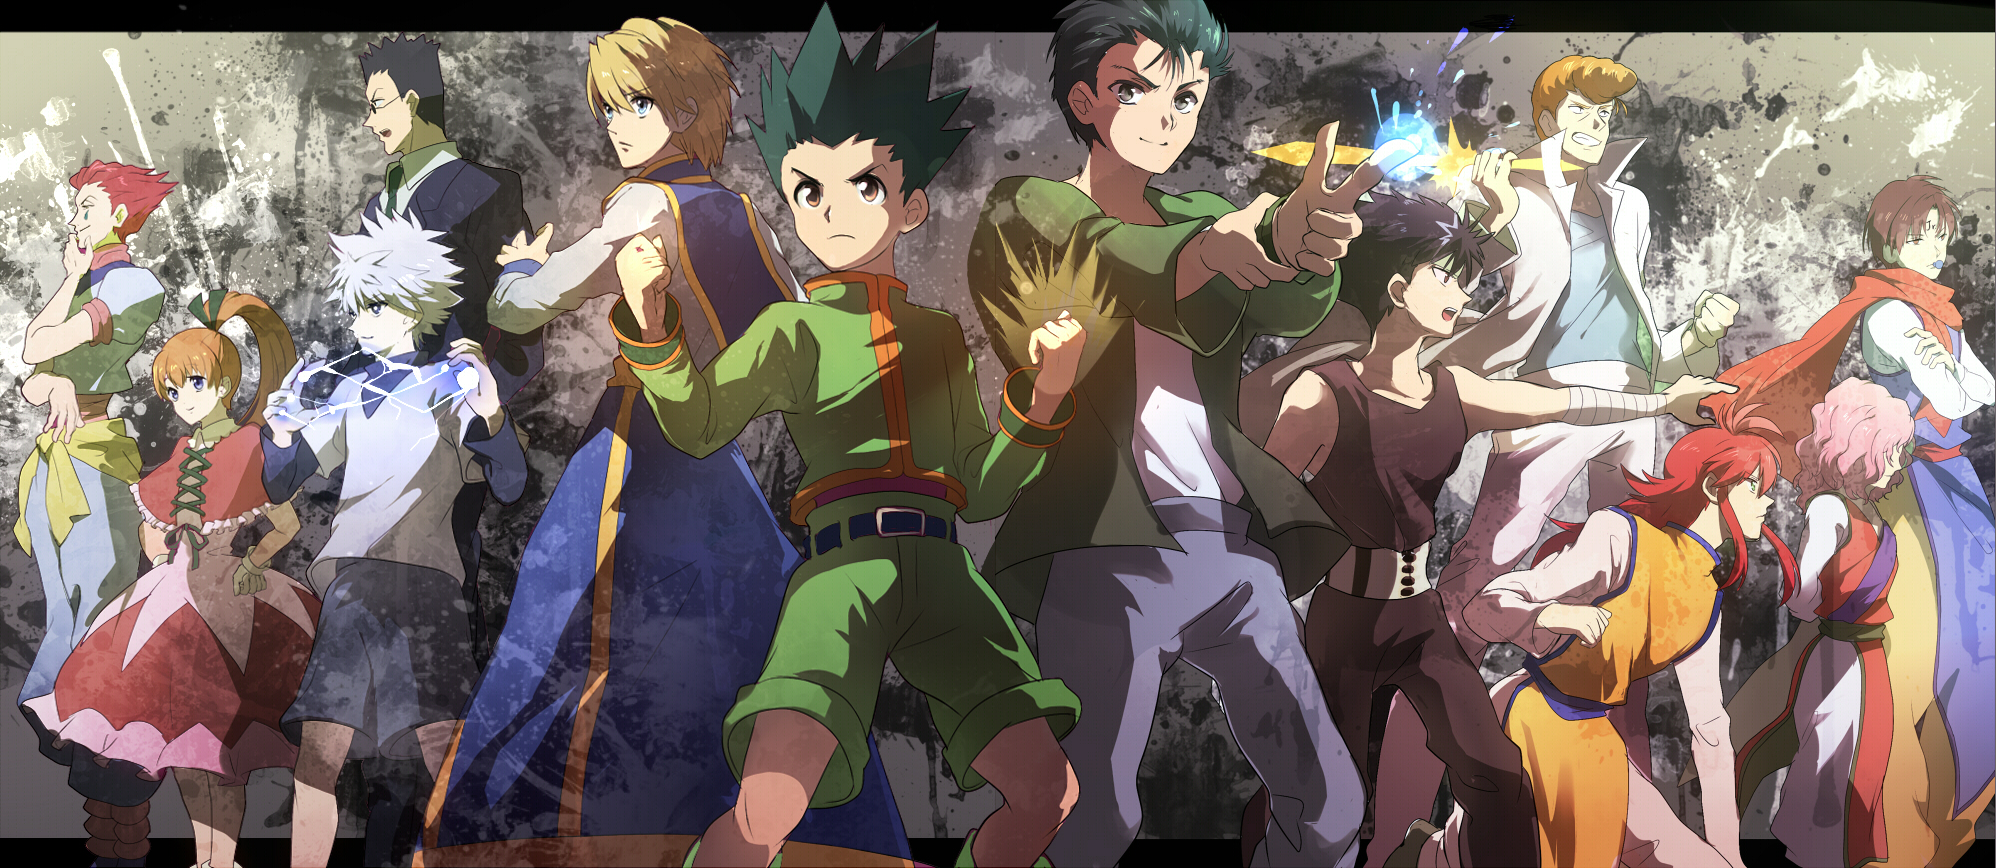 Anime Multiverse Images Hunter X Yu HD Wallpaper And Background Photos